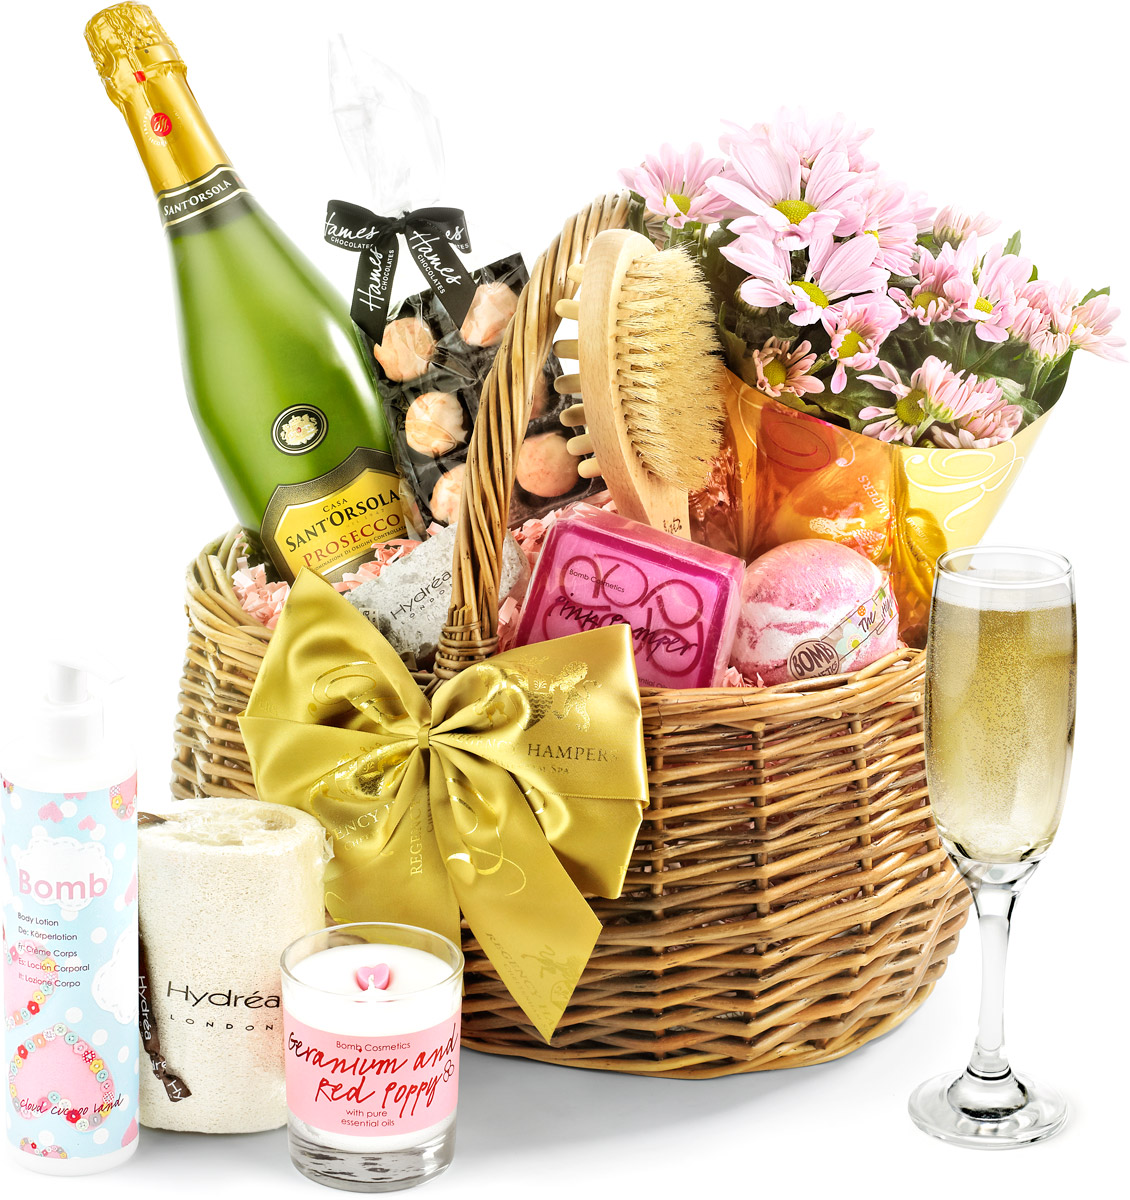 Prosecco & Flowers Luxury Pampering Set in Gift Basket